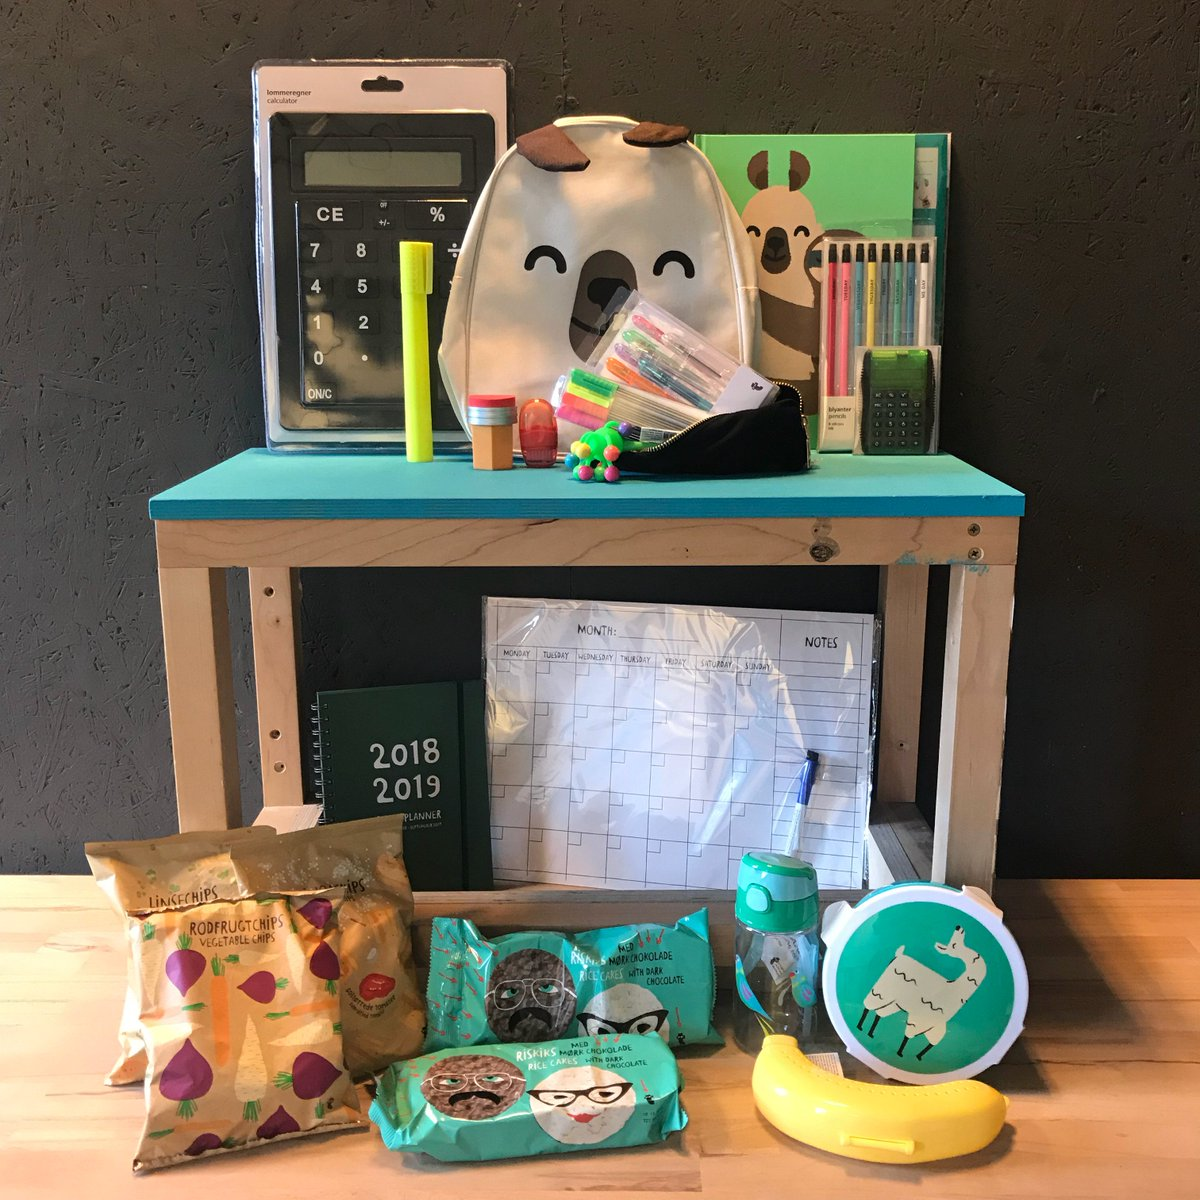 🎉#Competition🎉 To celebrate #backtoschool, we've got a bundle of school essentials to #giveaway to 1 lucky winner!  To enter: 1) Download GreenJinn and register: https://app.greenjinn.com/back-to-school 2) Follow @GreenJinn & RT this post, commenting your favourite school subject  ENDS 16/09/18